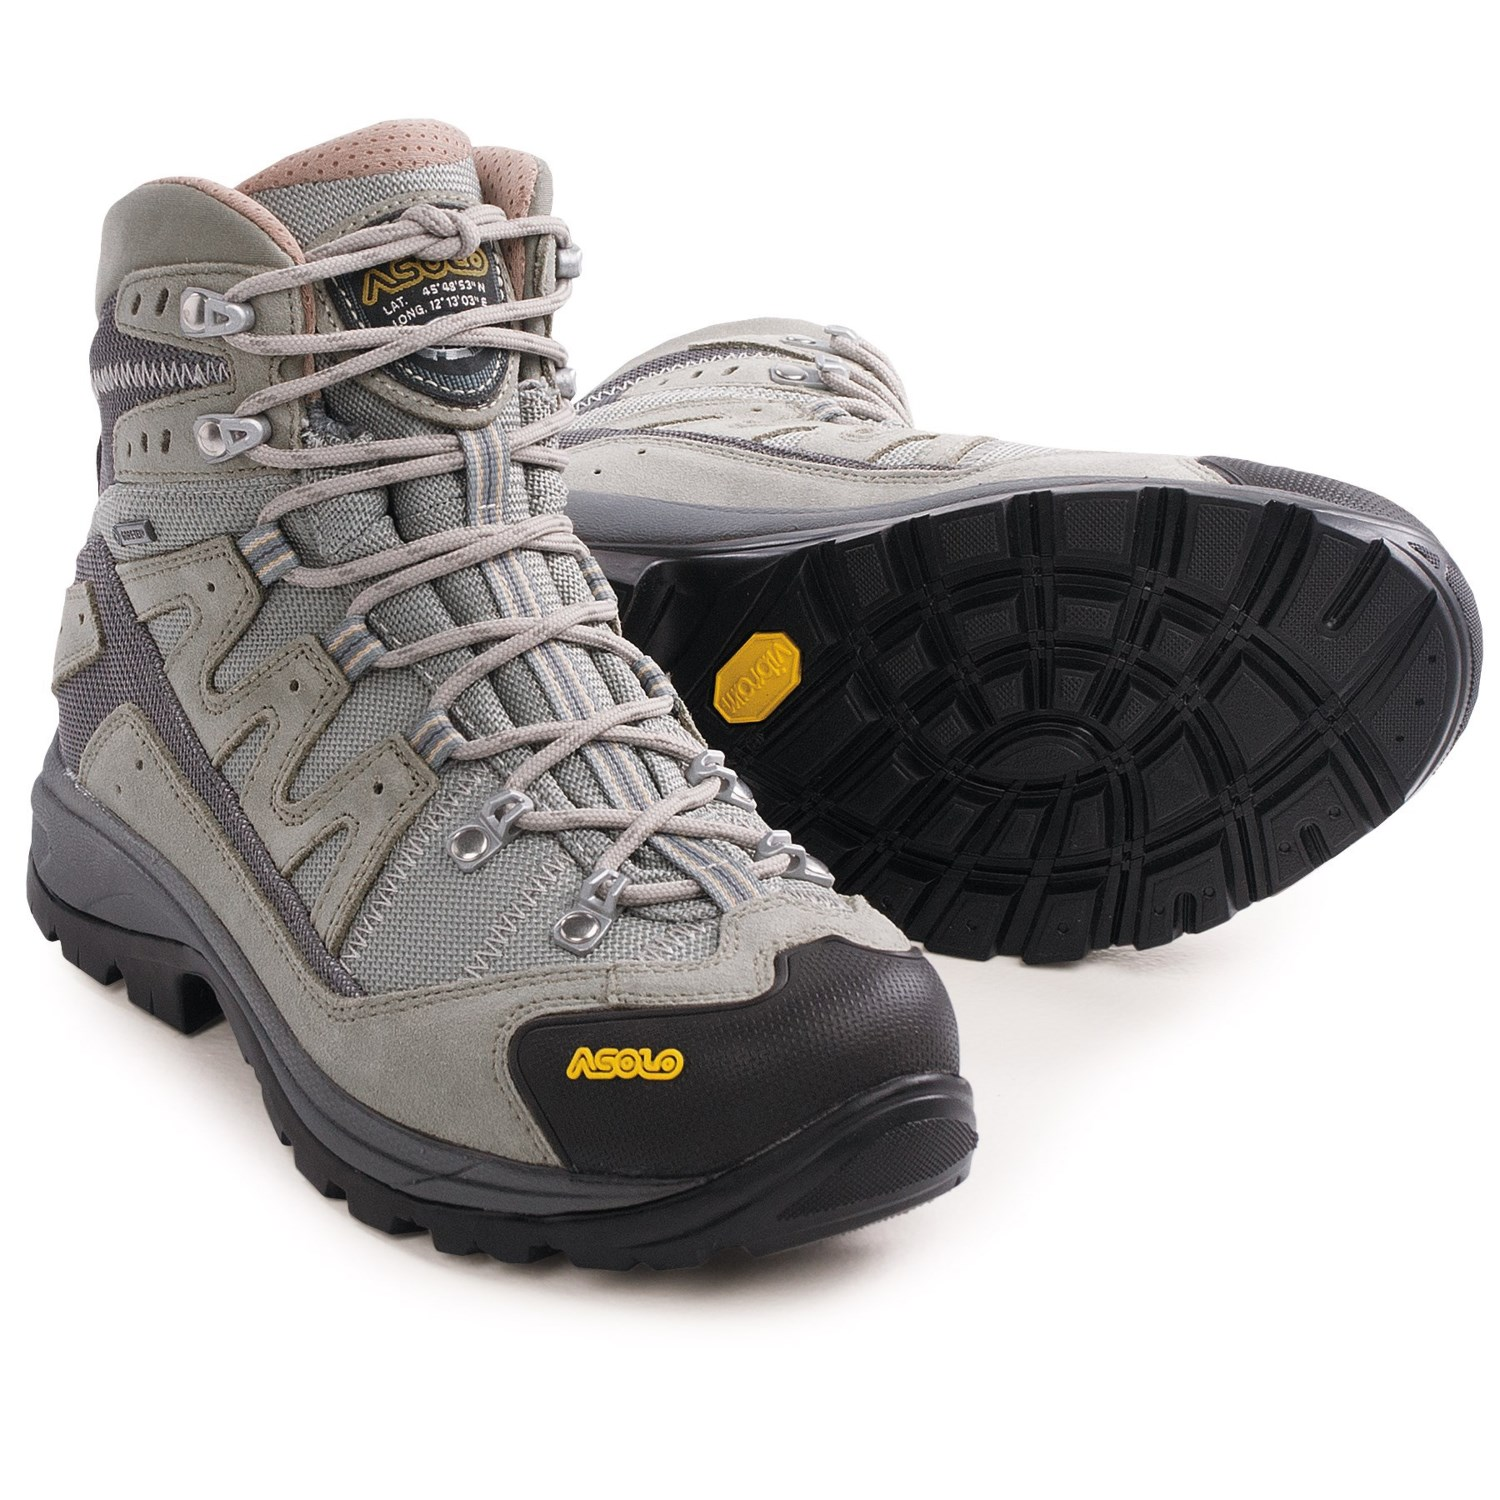 Salomon Shoes Sale Clearance